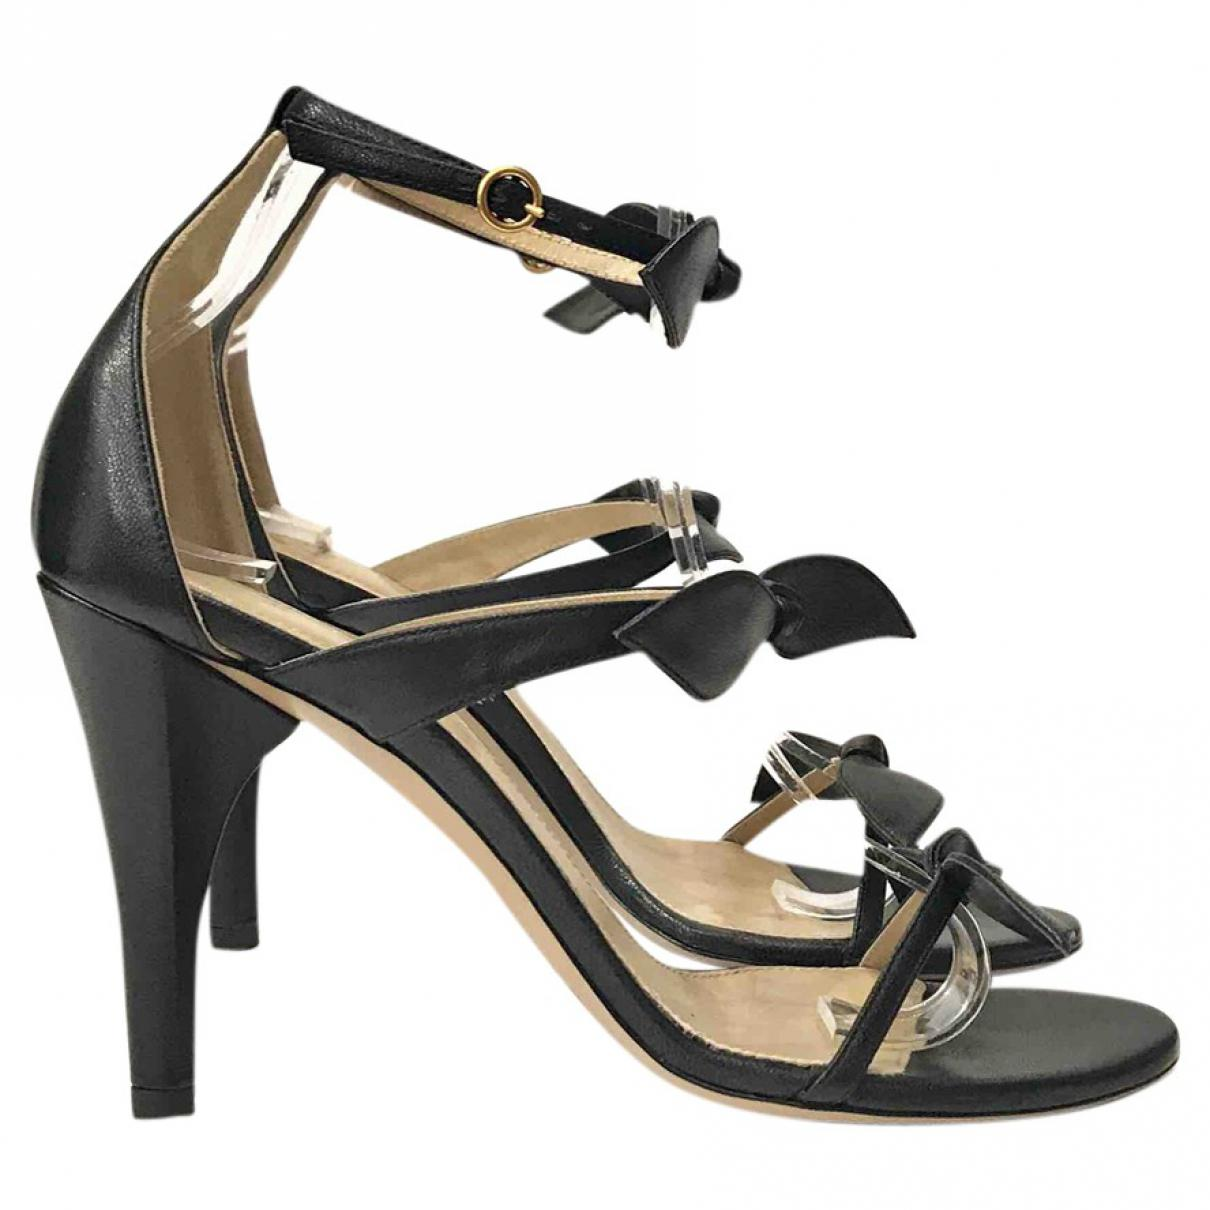 Pre-owned - Leather heels Chlo IrkP16Ilo0